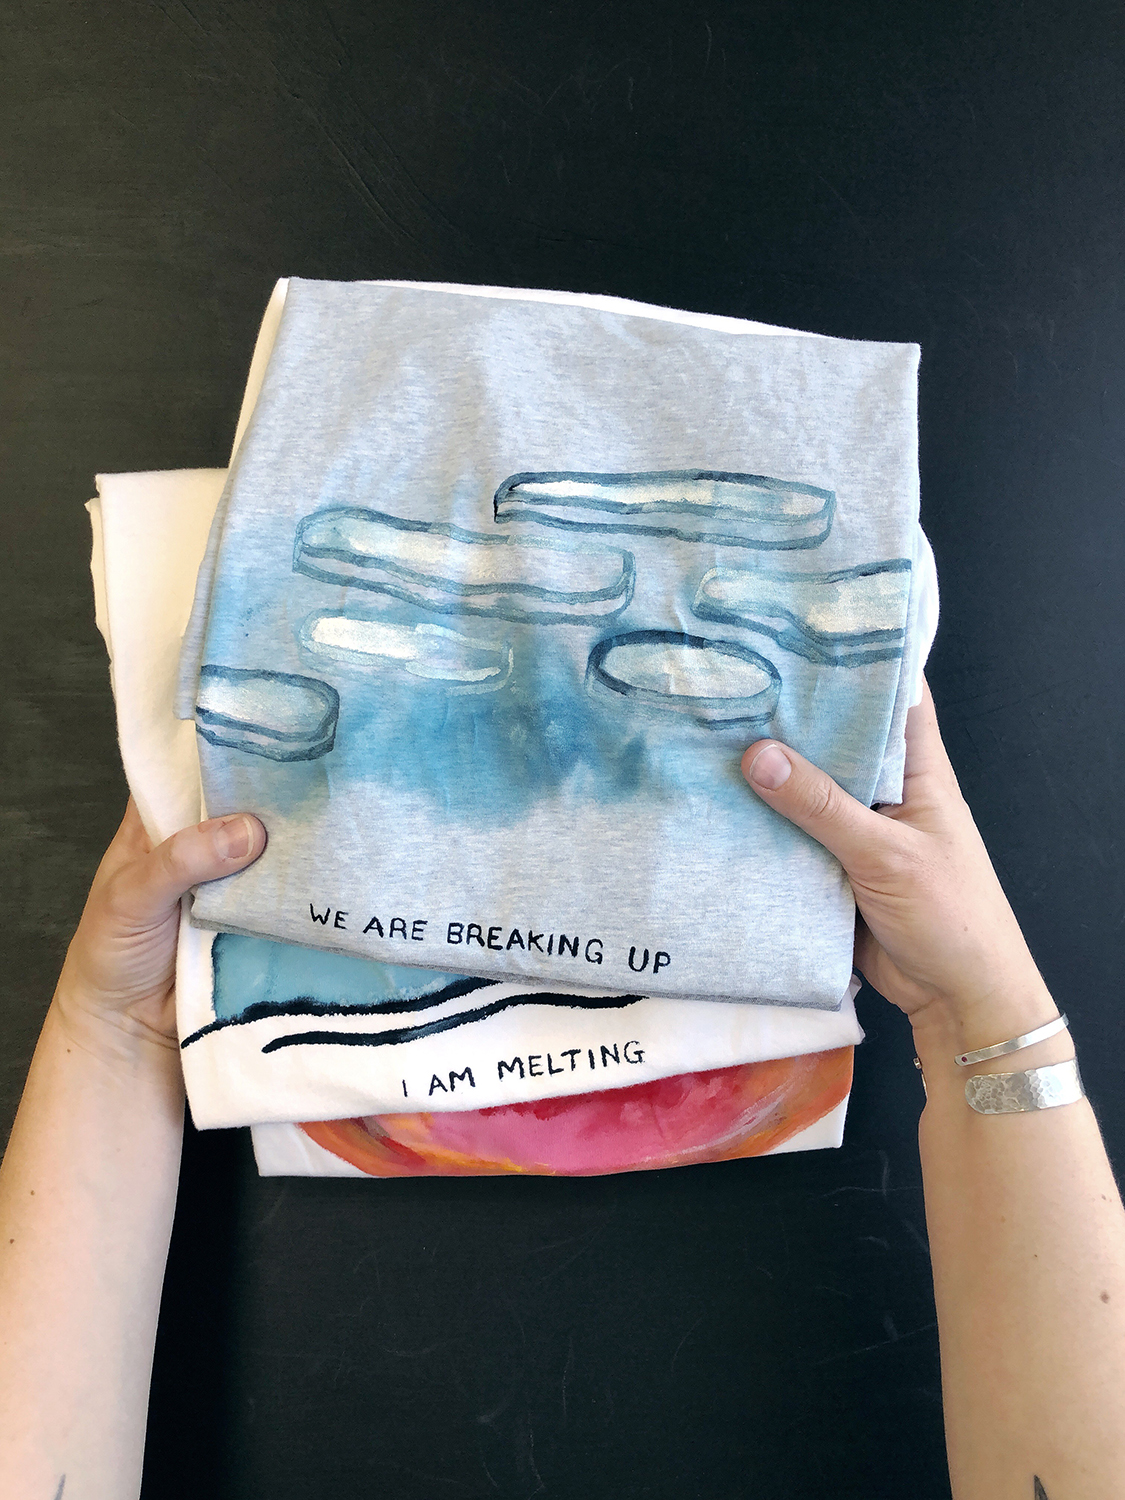 Climate Change T-shirts - We Are Breaking Up - Rebecca Mir Grady